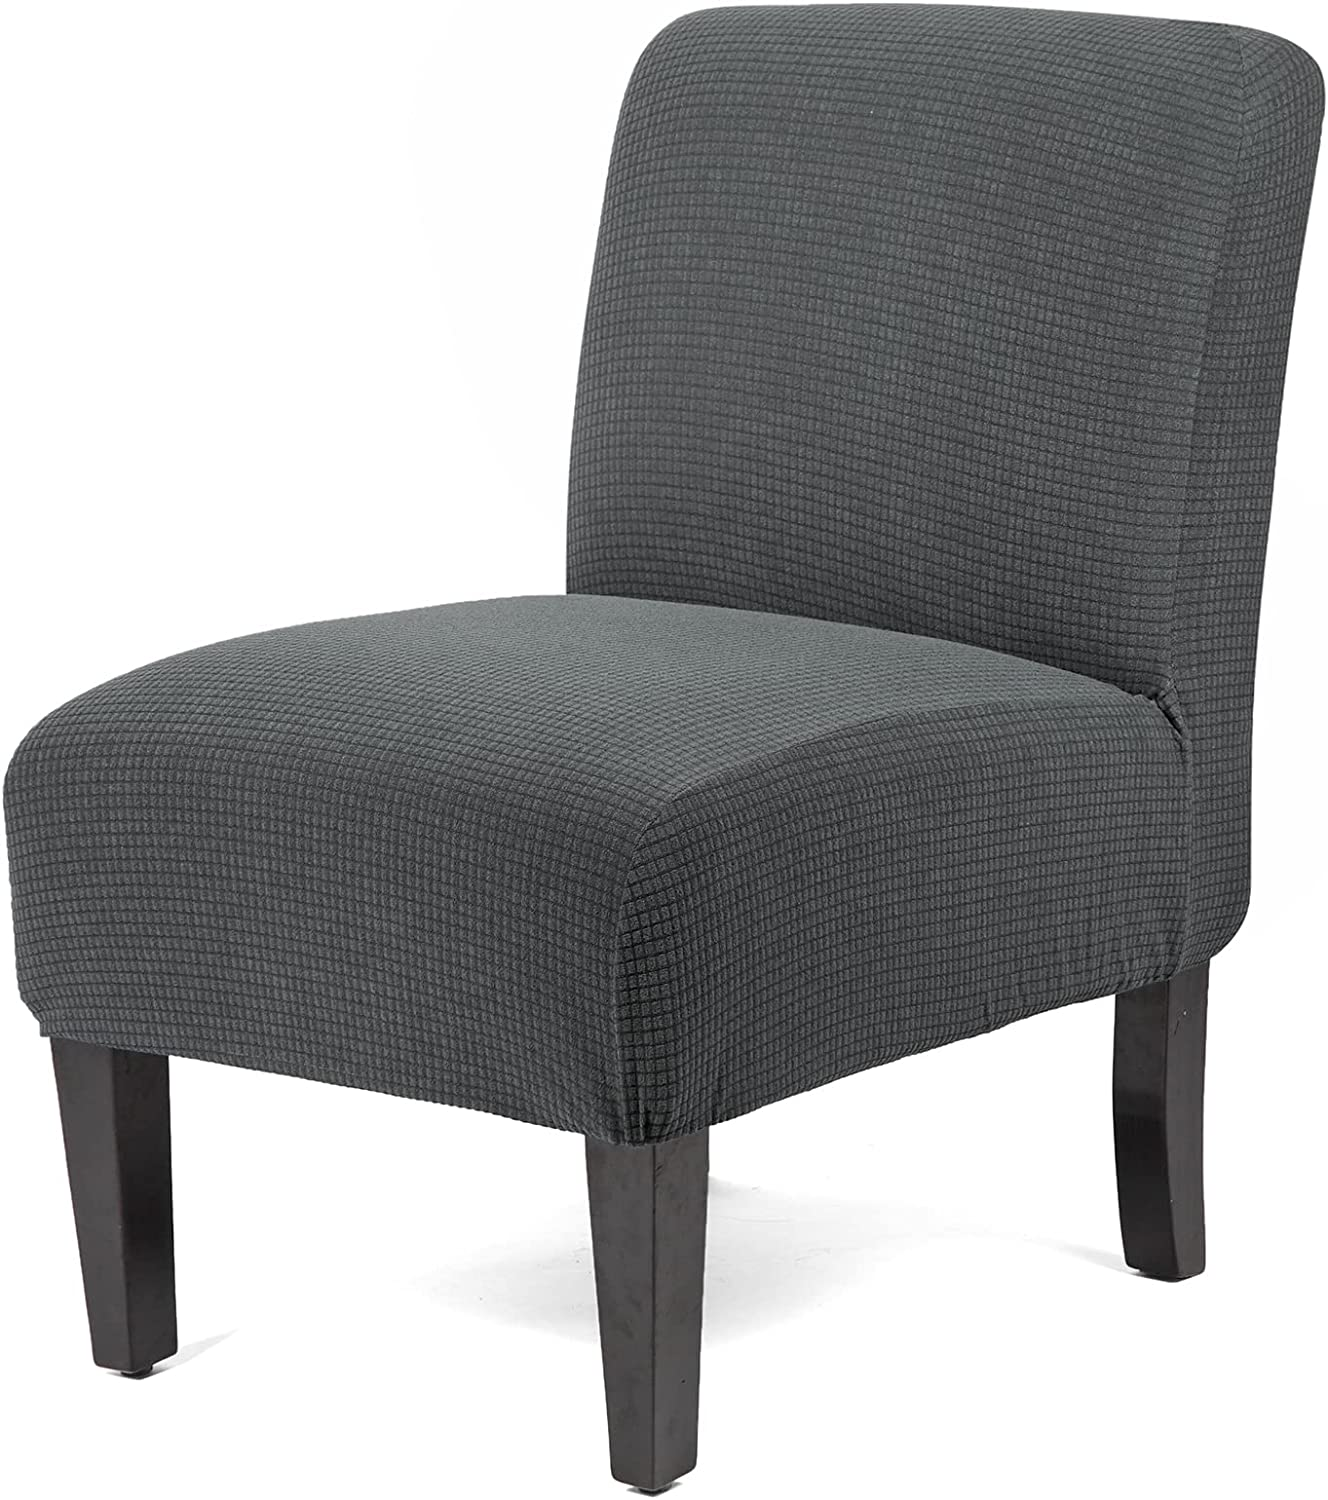 WOMACO Armless Accent Chair Slipcover Stretch Accent Slipper Chair Cover Removable Oversized Big Chair Furniture Protector Slip Cover for Home Hotel (Gray, 1)